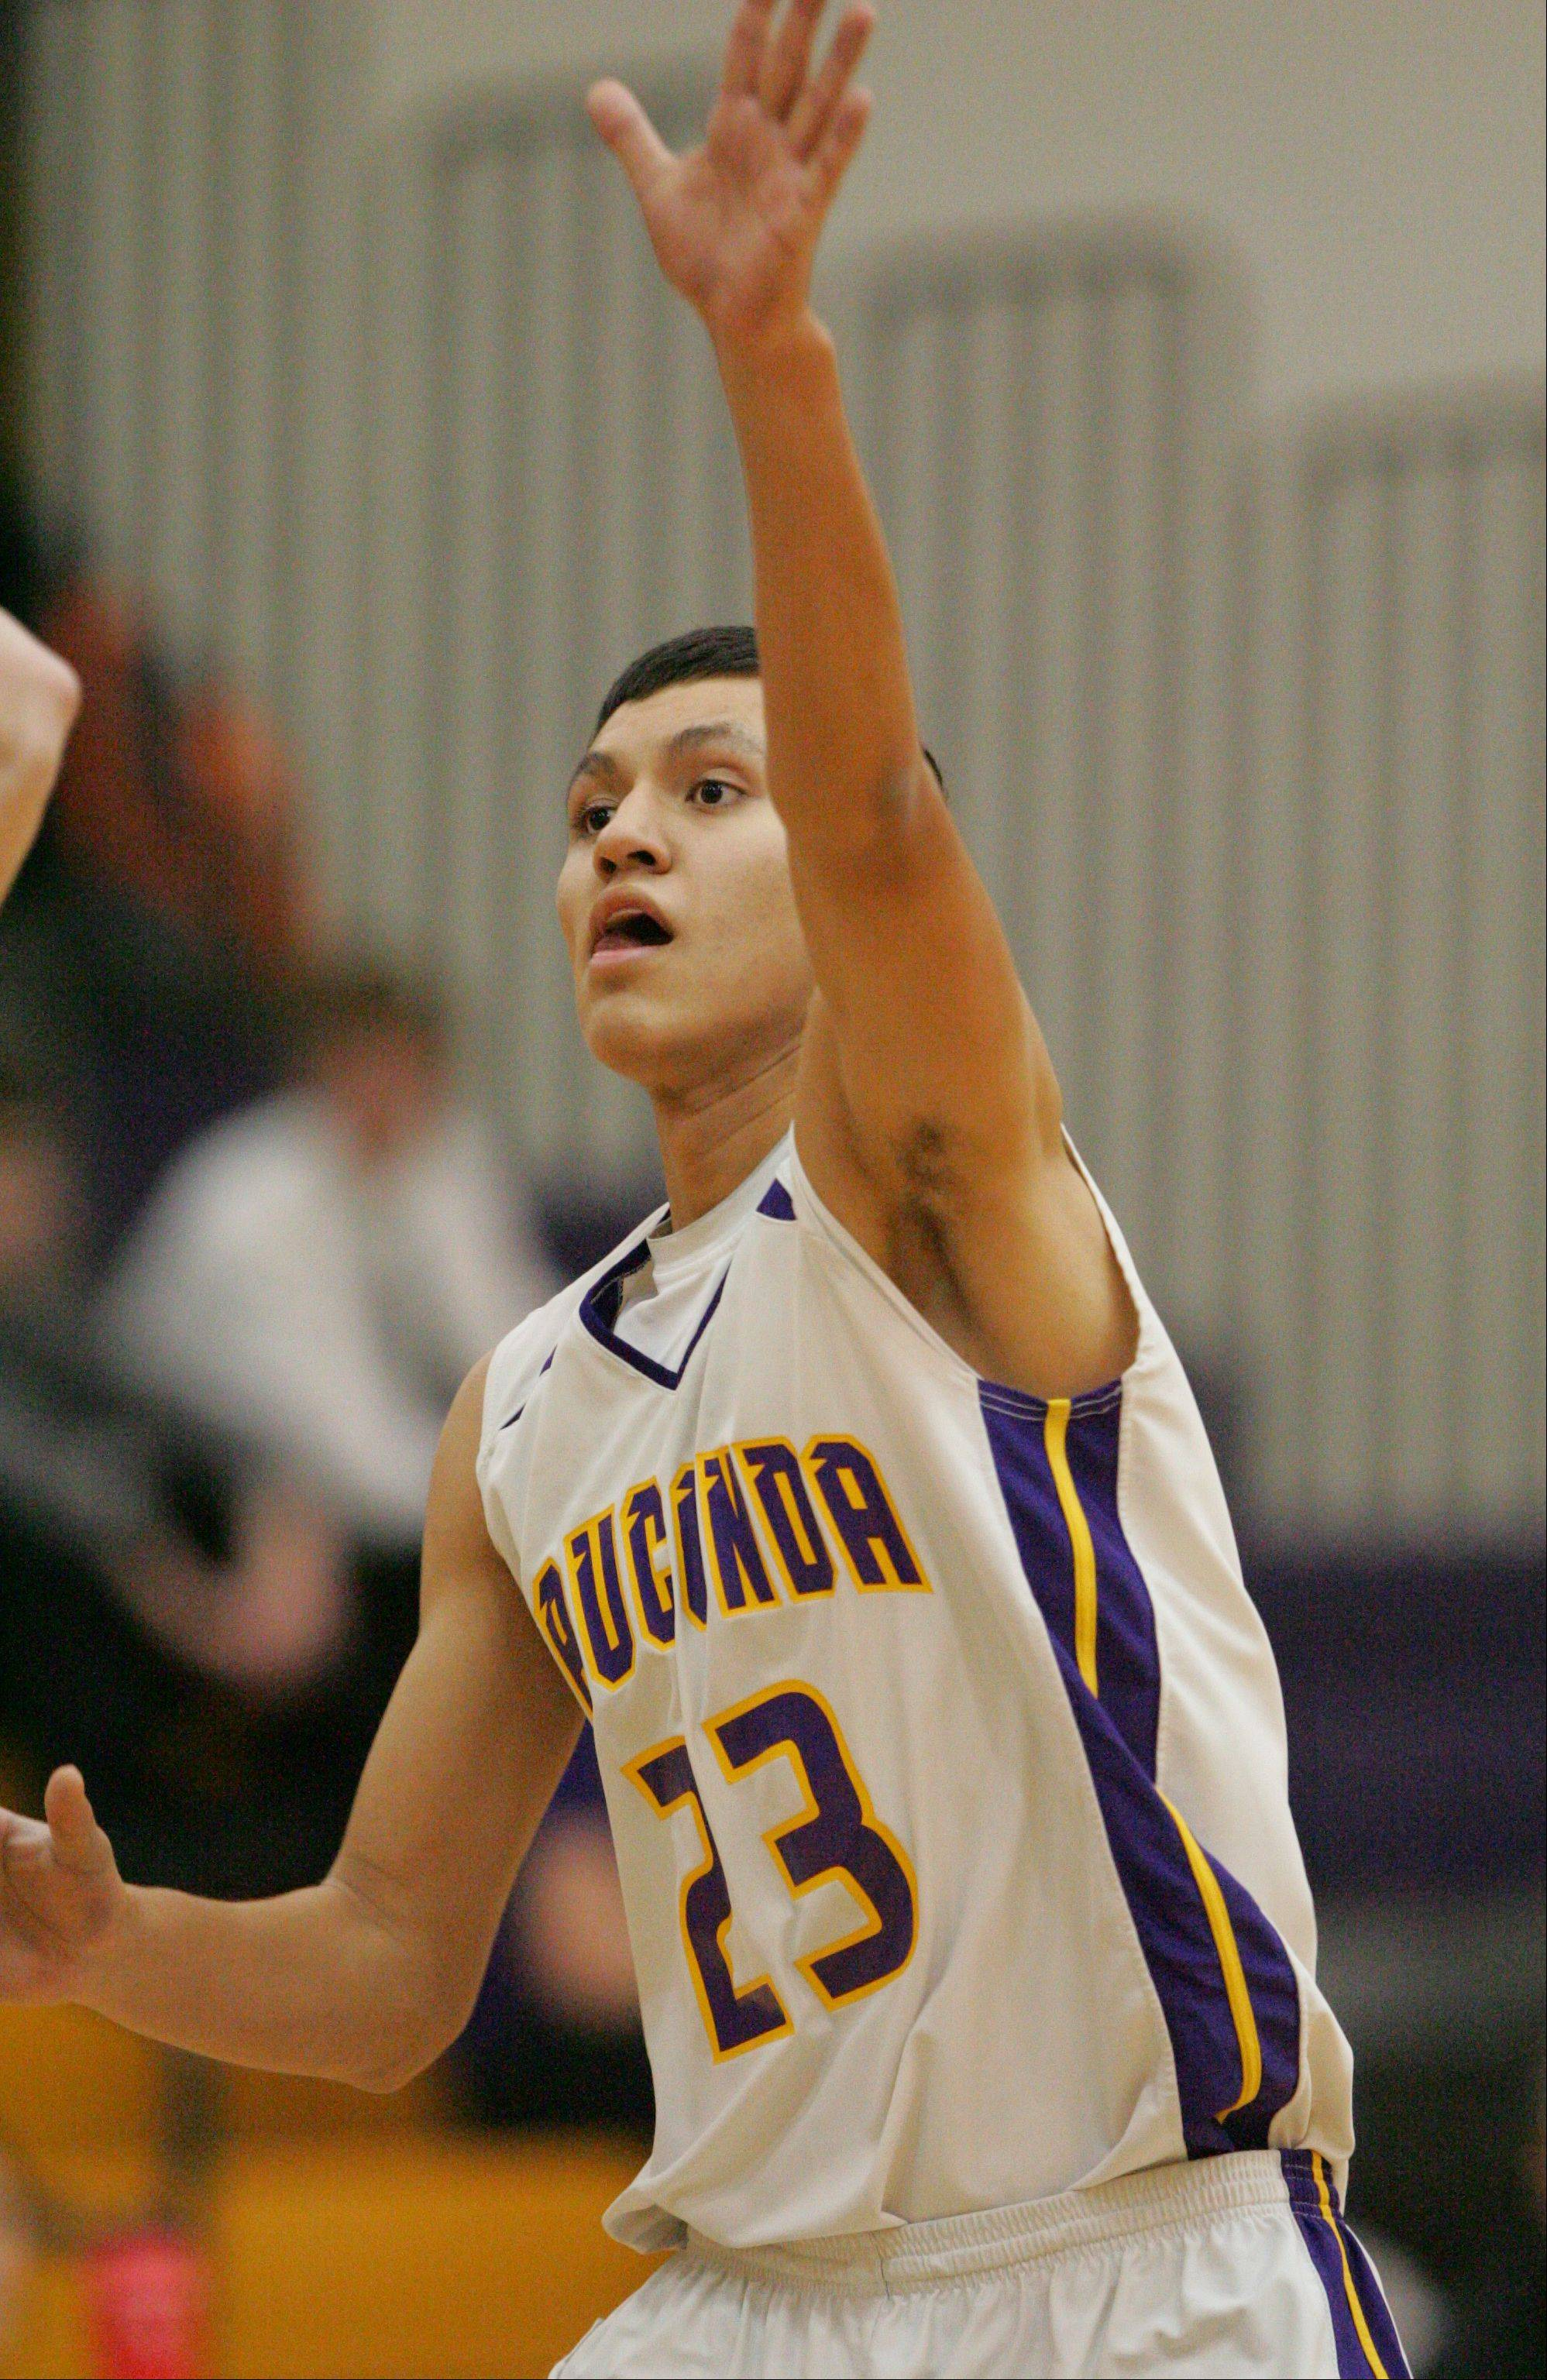 Images from the Woodstock North at Wauconda boys basketball game Monday, Dec. 10 in Wauconda.